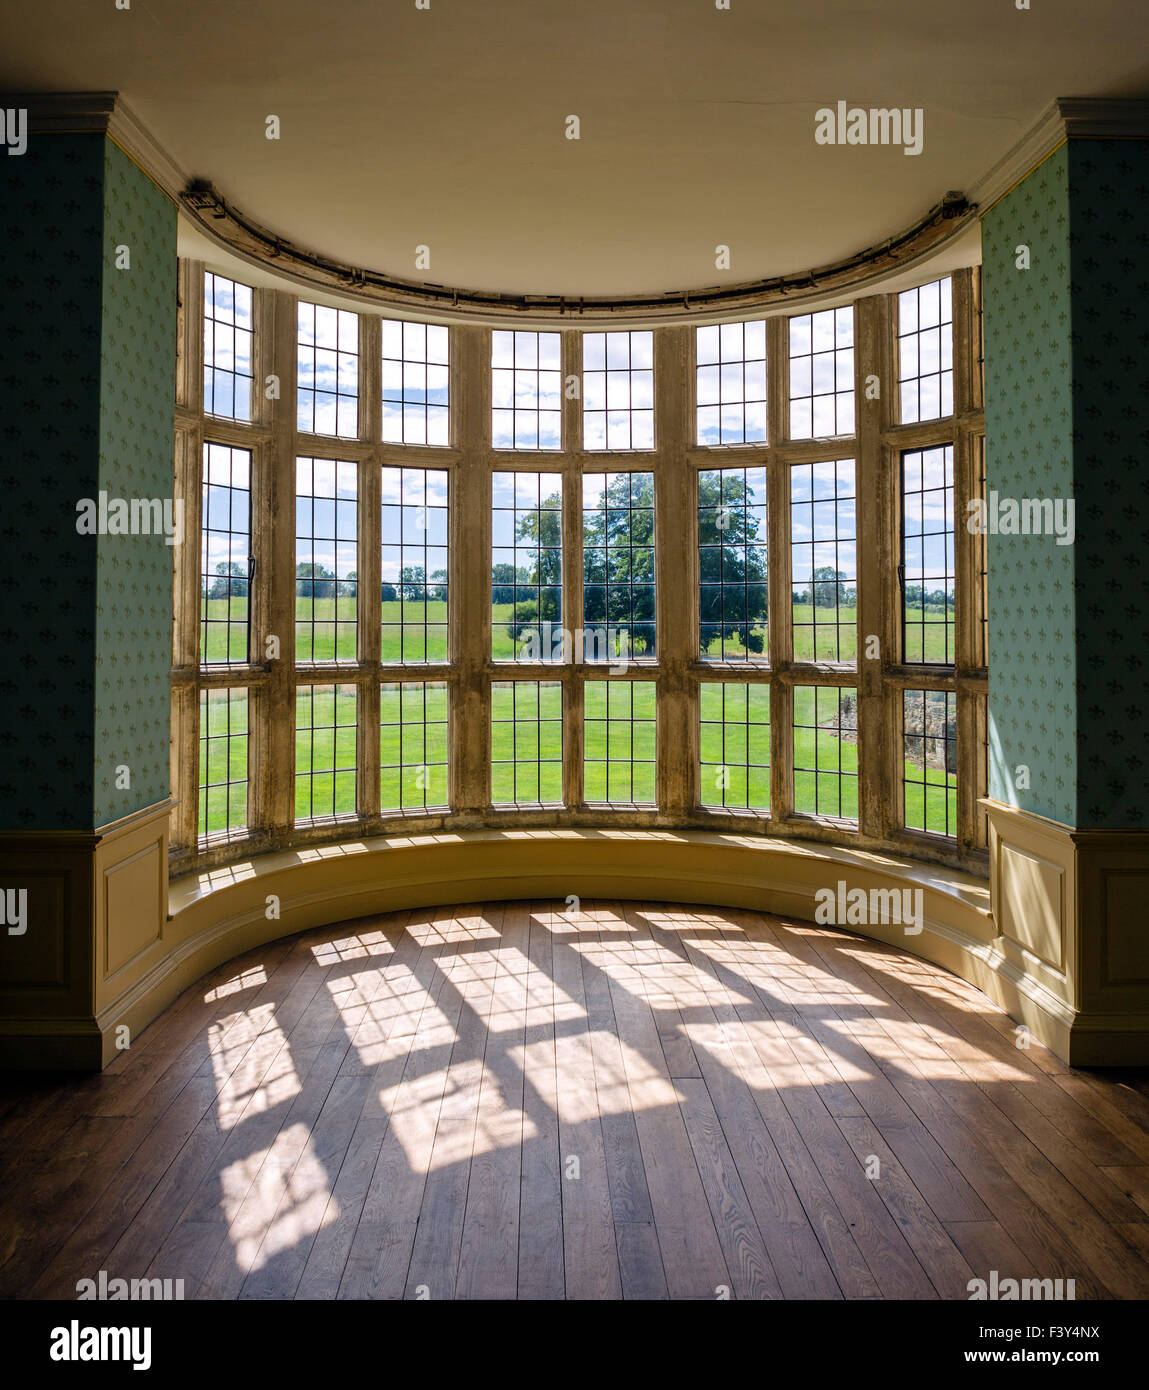 View from inside Kirby Hall, a now ruined 16thC Elizabethan country house near Gretton, Northamptonshire, England, - Stock Image